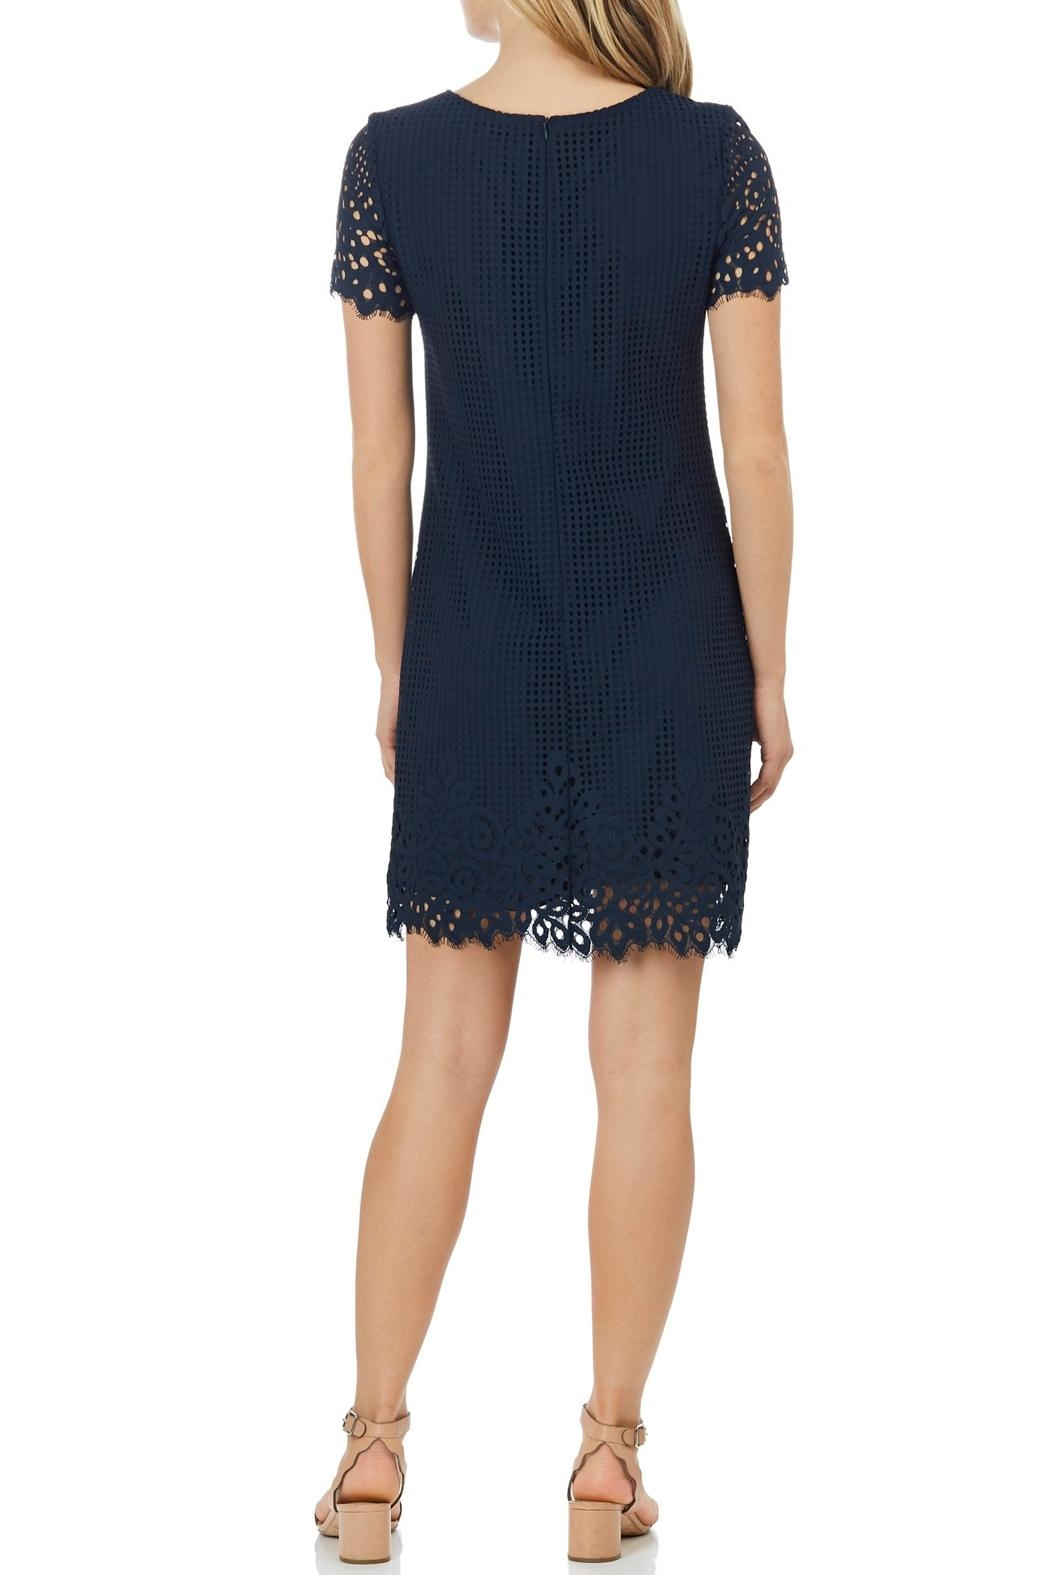 Jude Connally Ella Spring-Lace Dress - Front Full Image